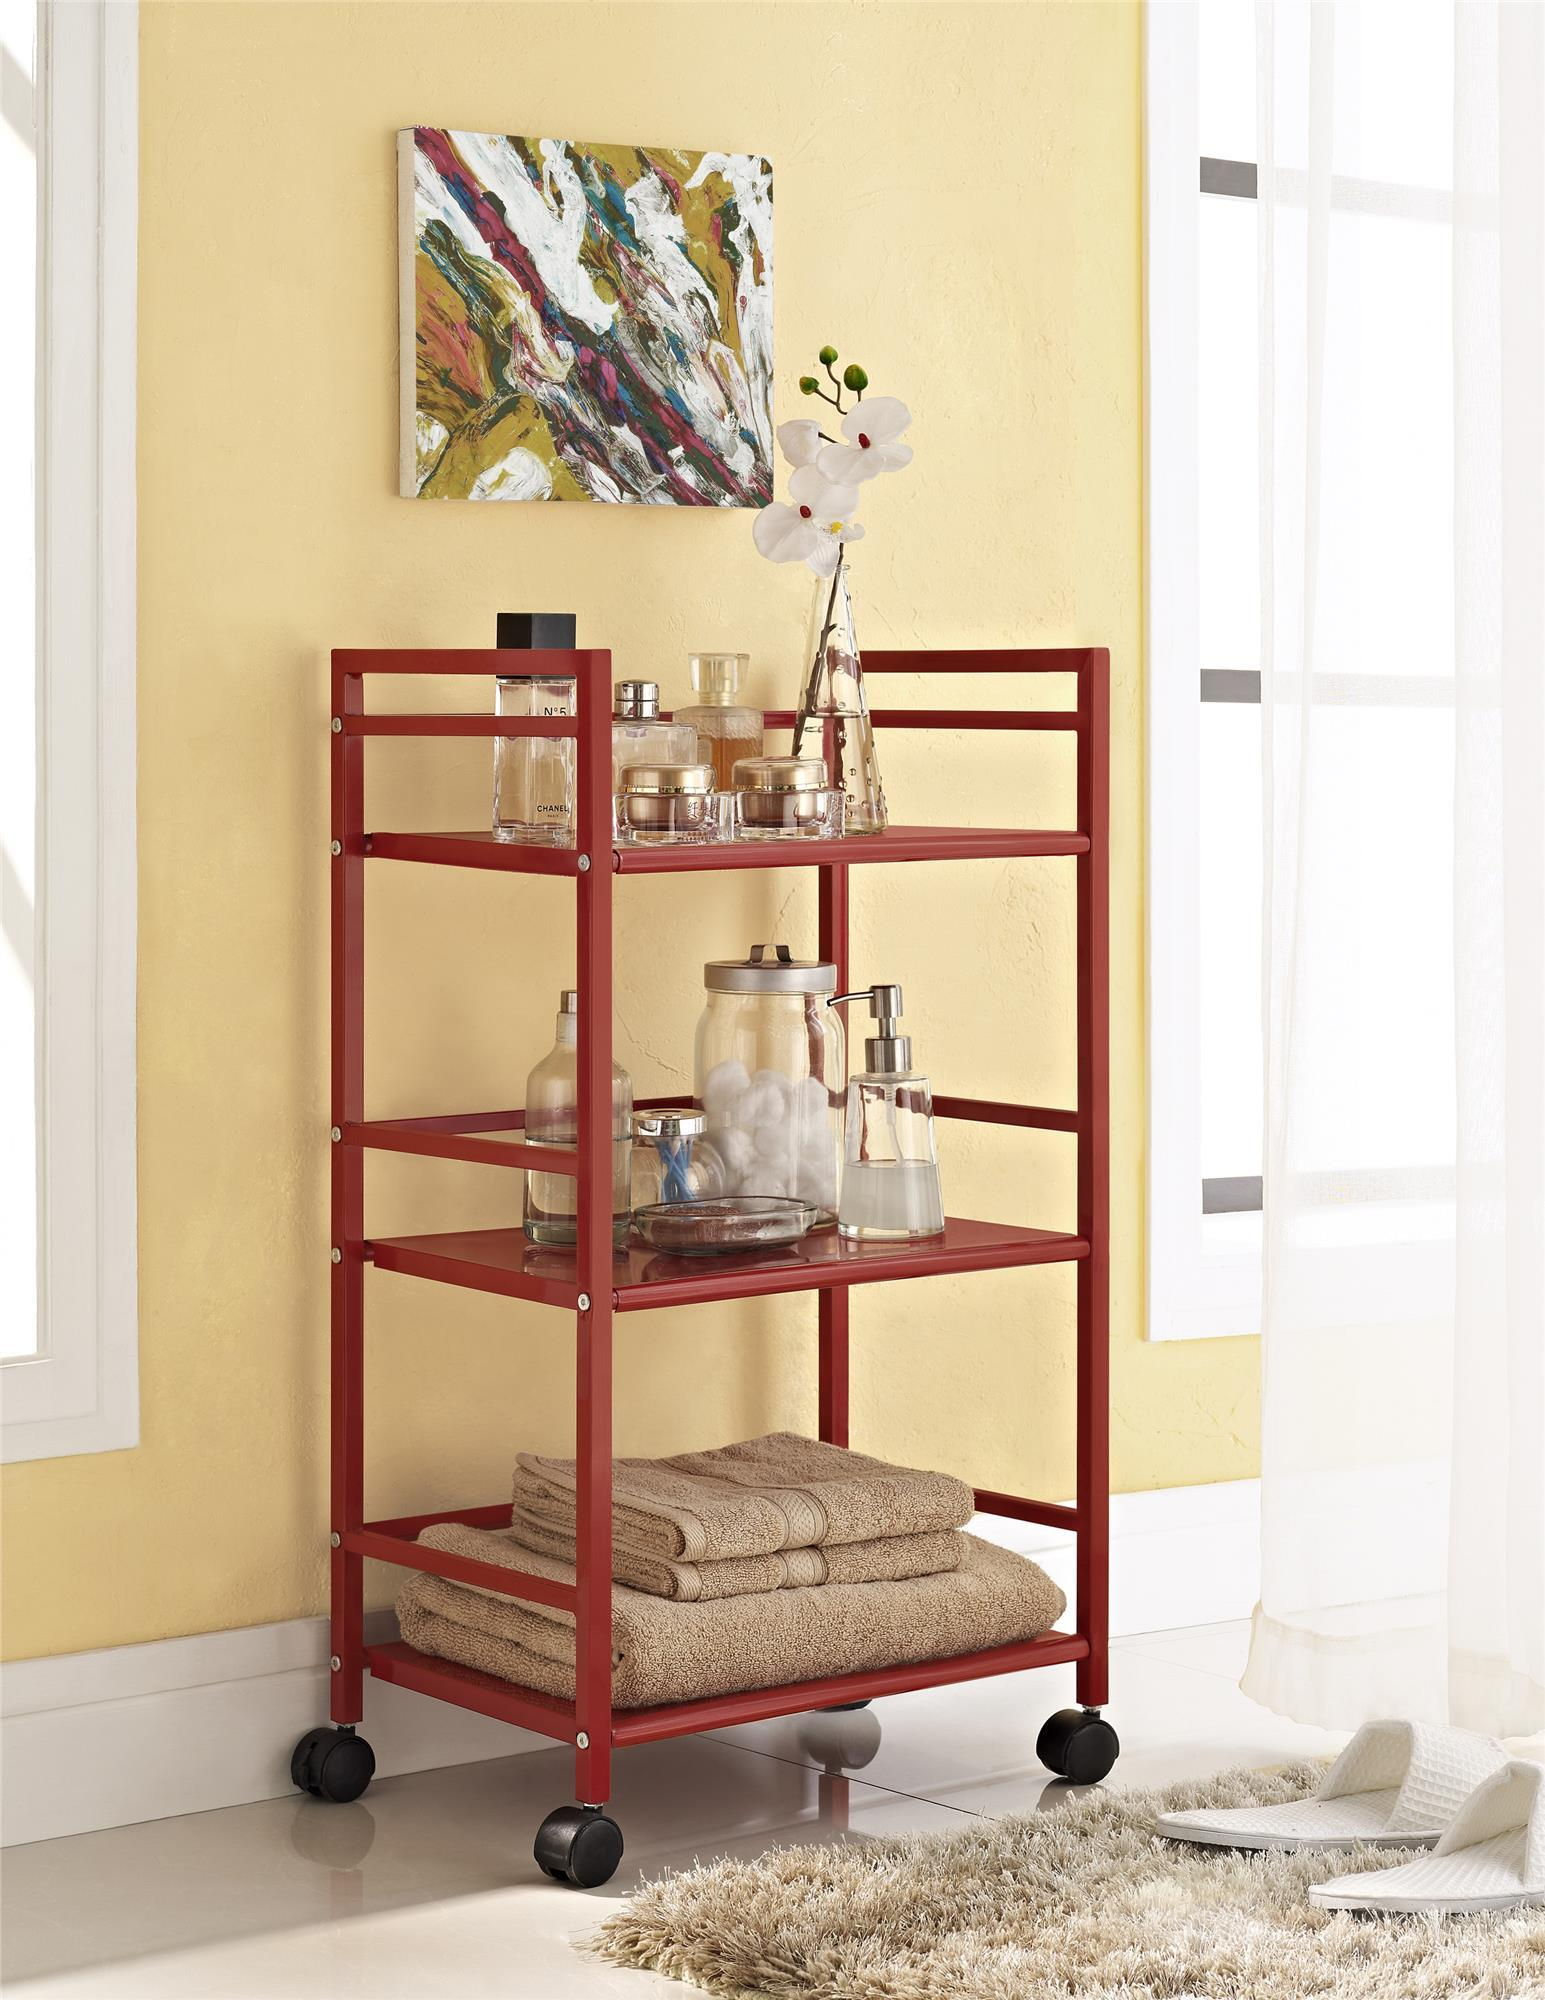 Ameriwood Home Marshall 3 Shelf Metal Rolling Kitchen Cart, Multiple Colors by Ameriwood